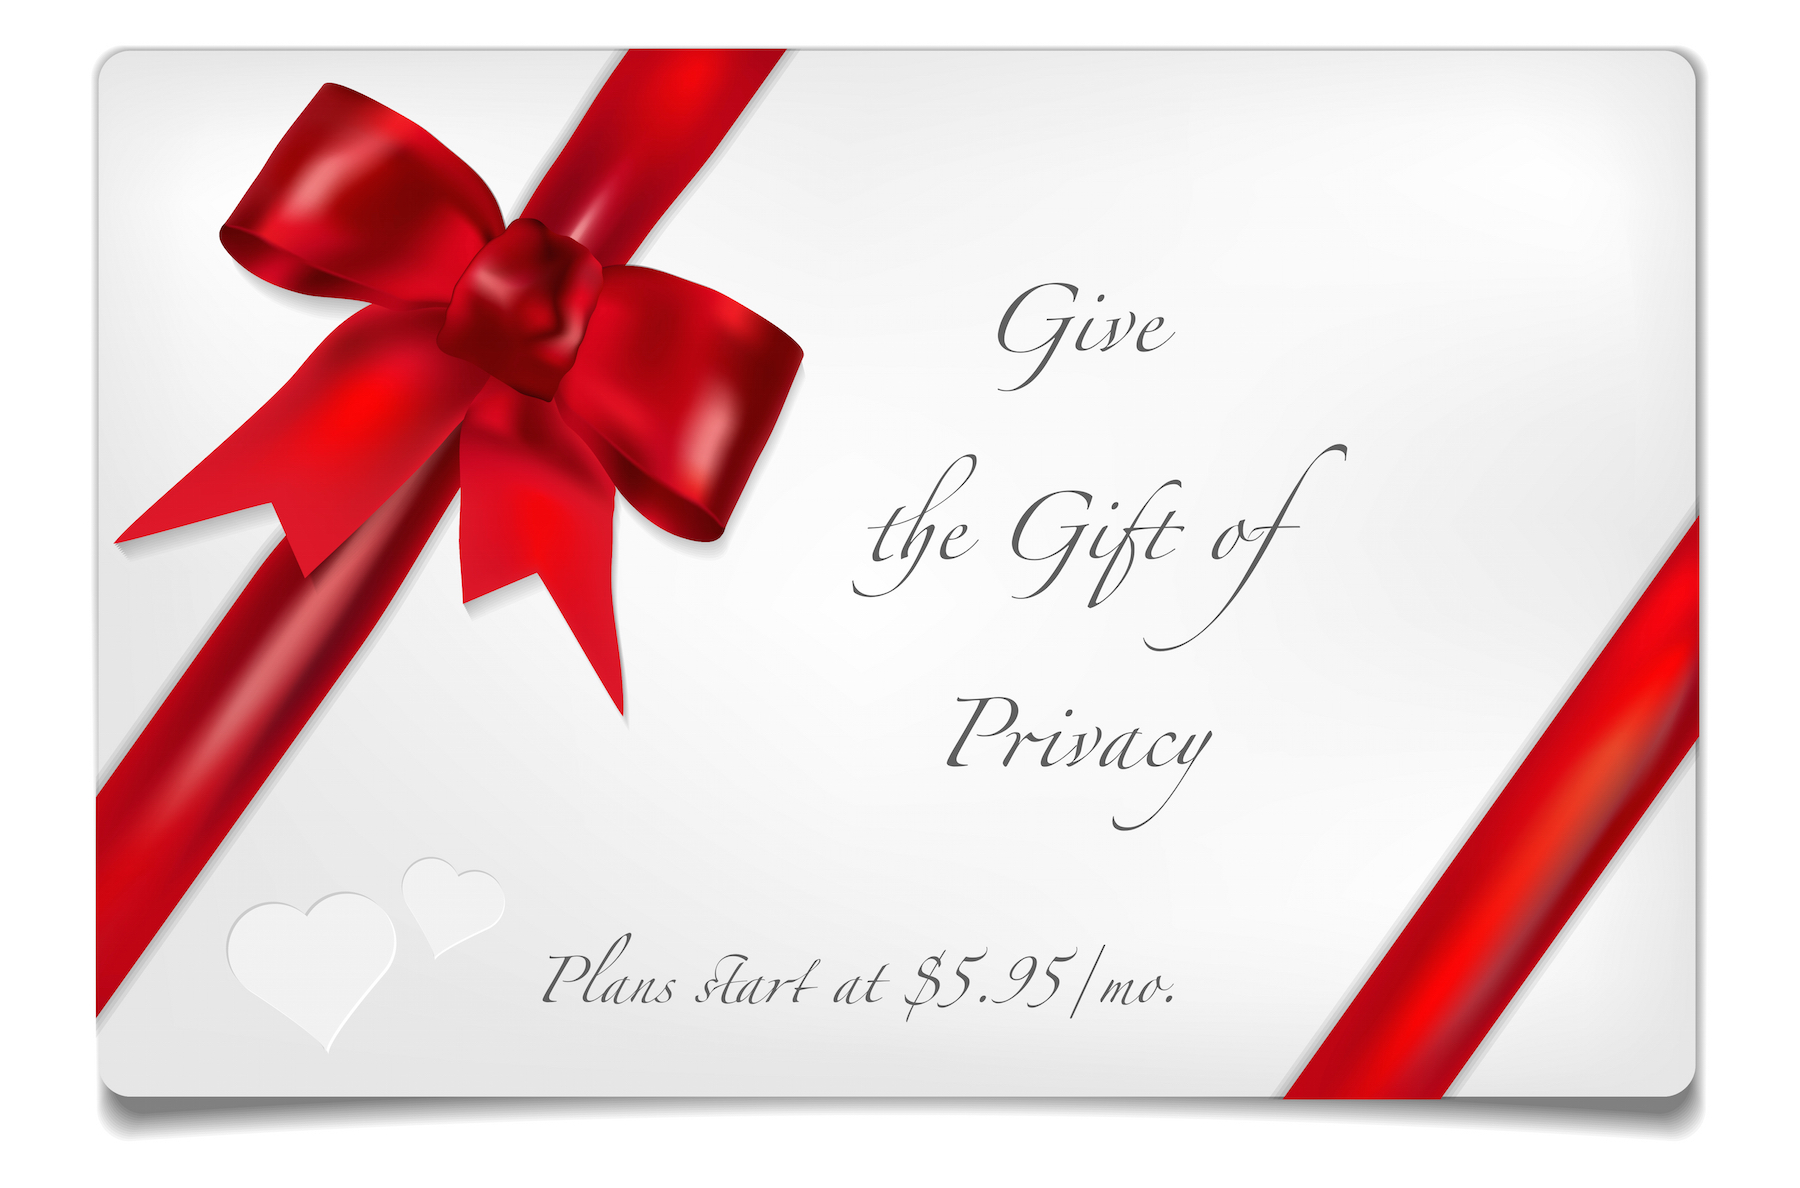 The Gift of Privacy